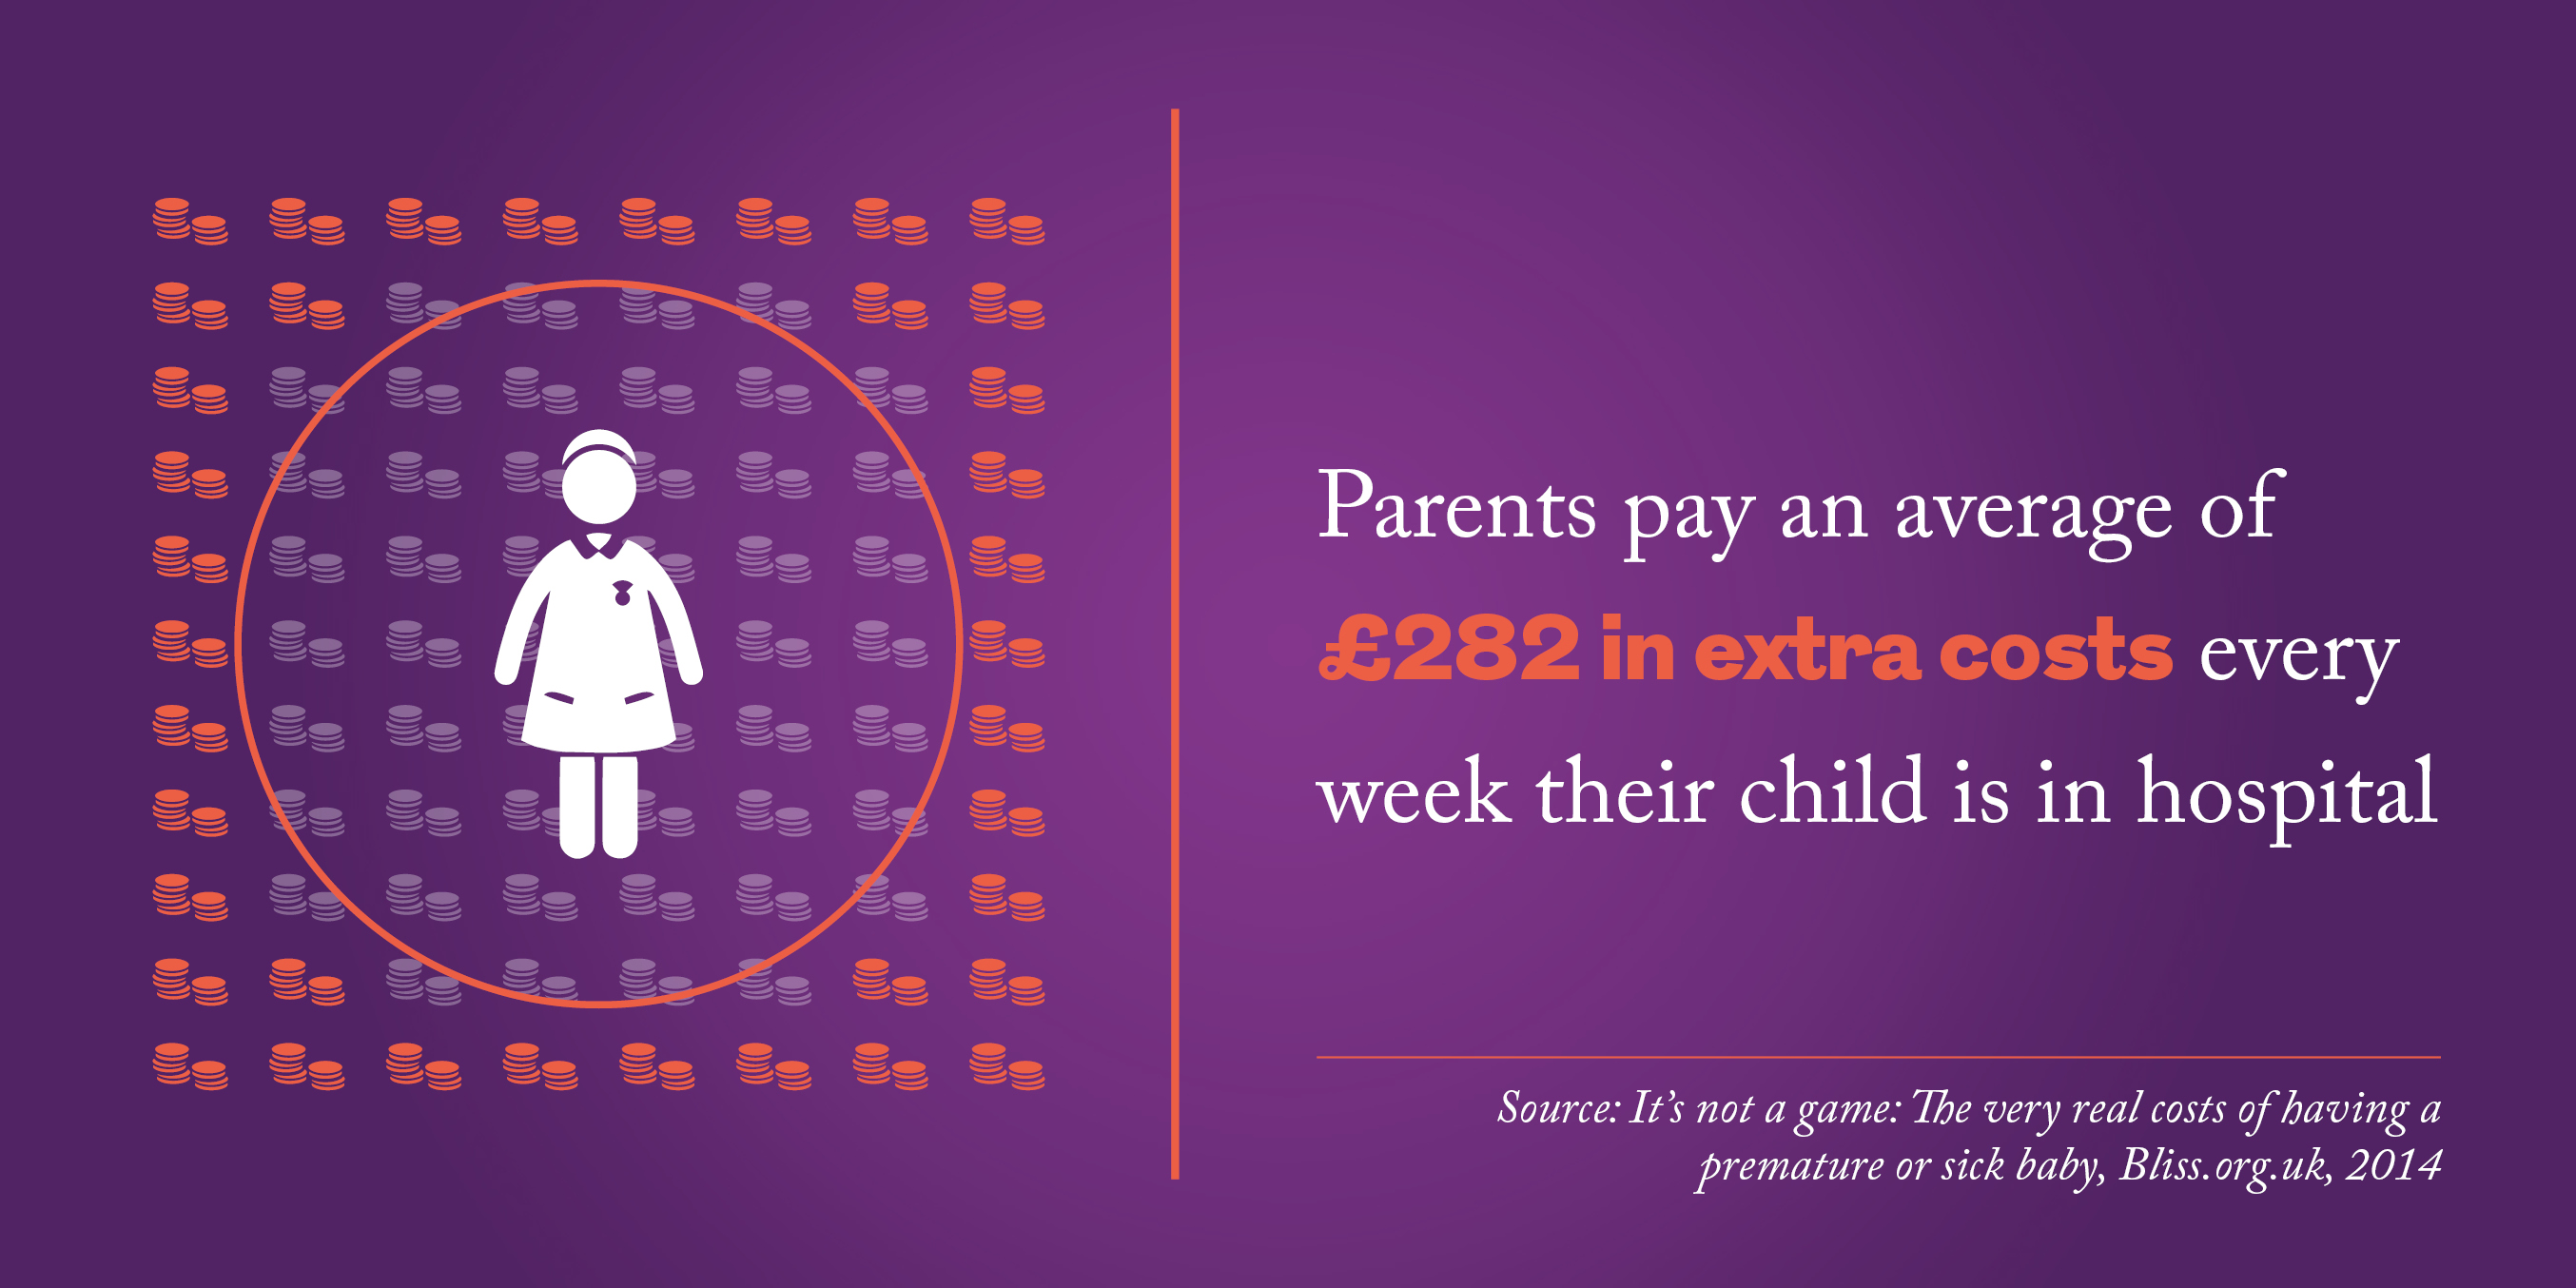 Parents pay an average of £282 in extra costs every week their child is in hospital.  Source: It's not a game: The very real costs of having a premature or sick baby, Bliss.org.uk, 2014